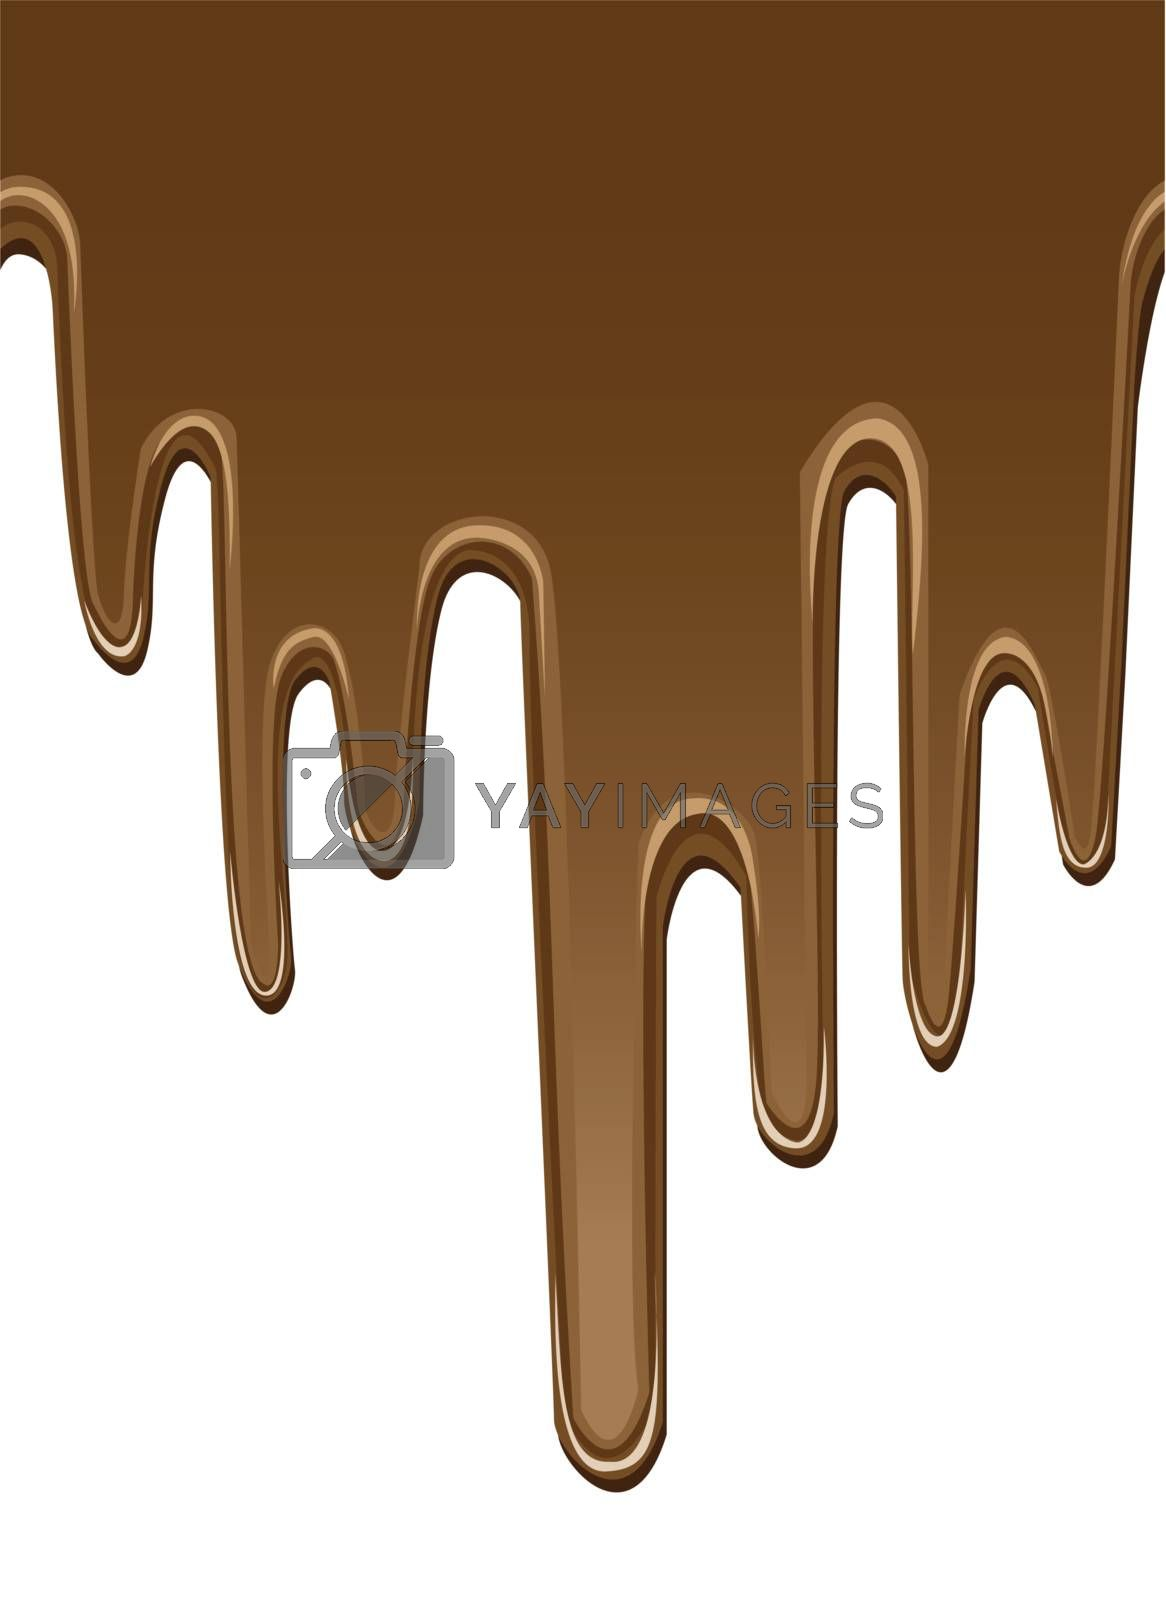 seamless melted chocolate backgrounds by mtkang